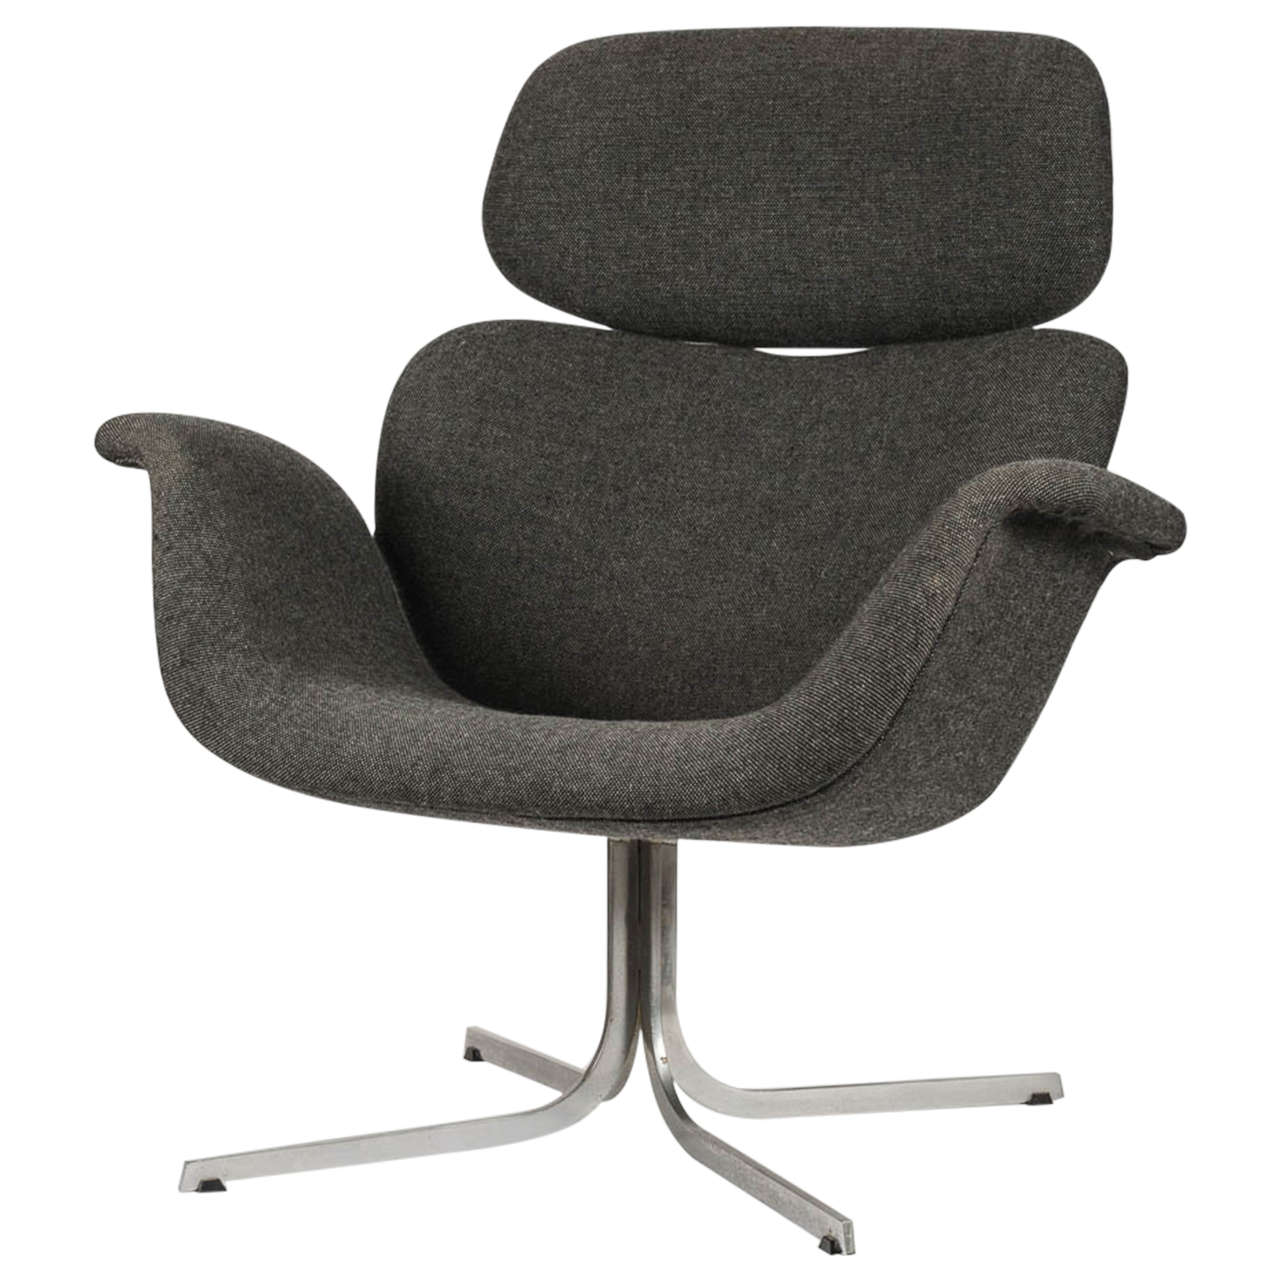 Big Tulip Lounge Chair by Pierre Paulin for Artifort For Sale at 1stdibs